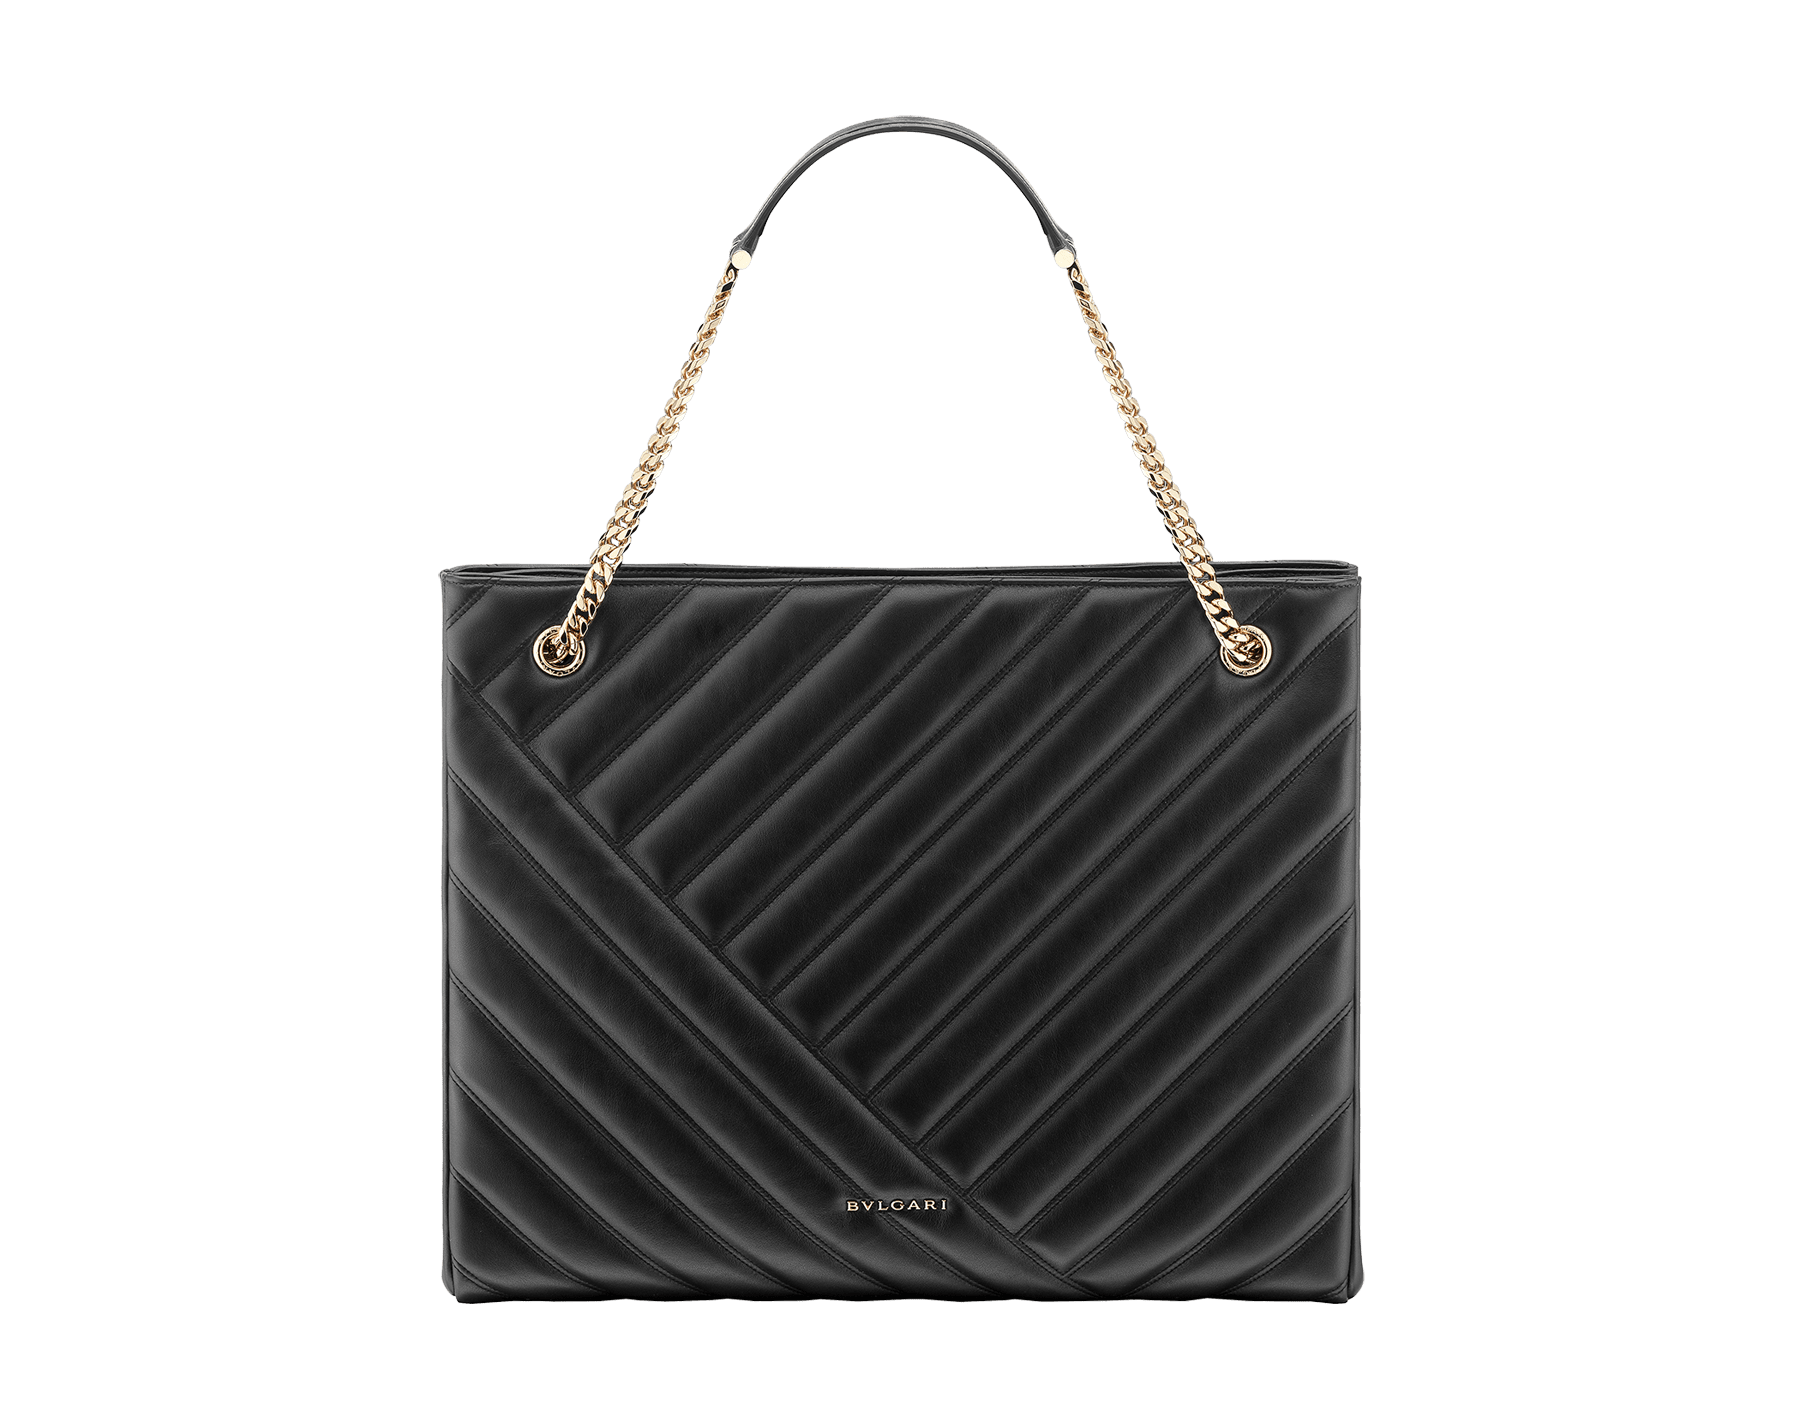 Serpenti Cabochon tote bag in soft matelassé black nappa leather with graphic motif and black calf leather. Snakehead decòr in rose gold plated brass embellished with matte black and shiny black enamel, and black onyx eyes. 287996 image 3